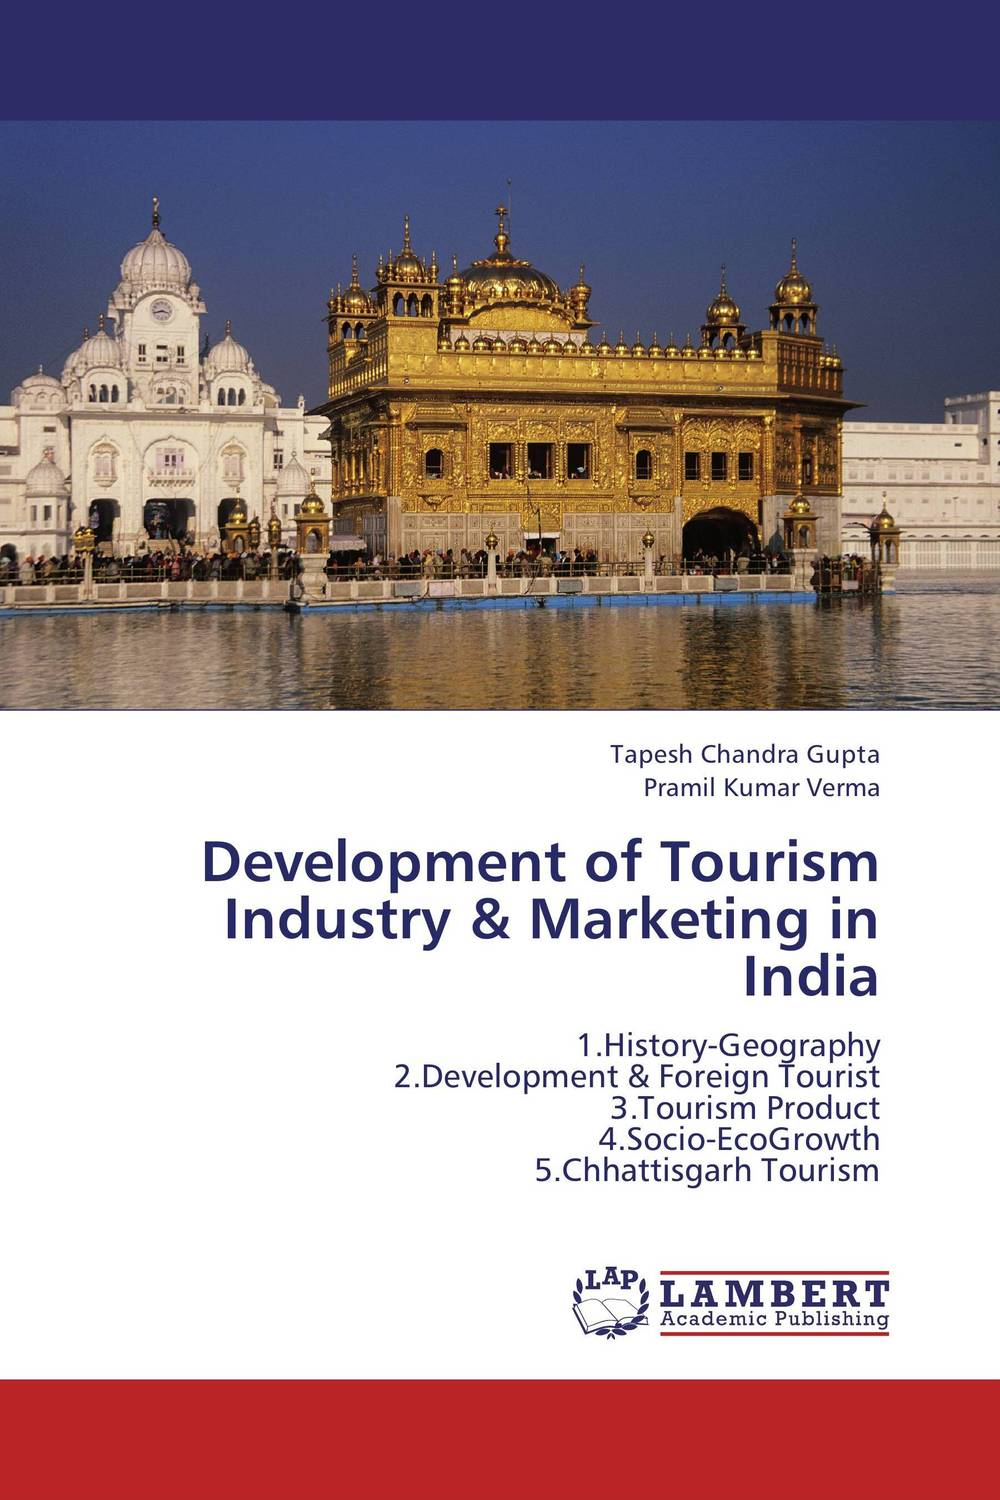 Development of Tourism Industry & Marketing in India ripudaman singh arihant kaur bhalla and er gurkamal singh adolescents of intact families and orphanages